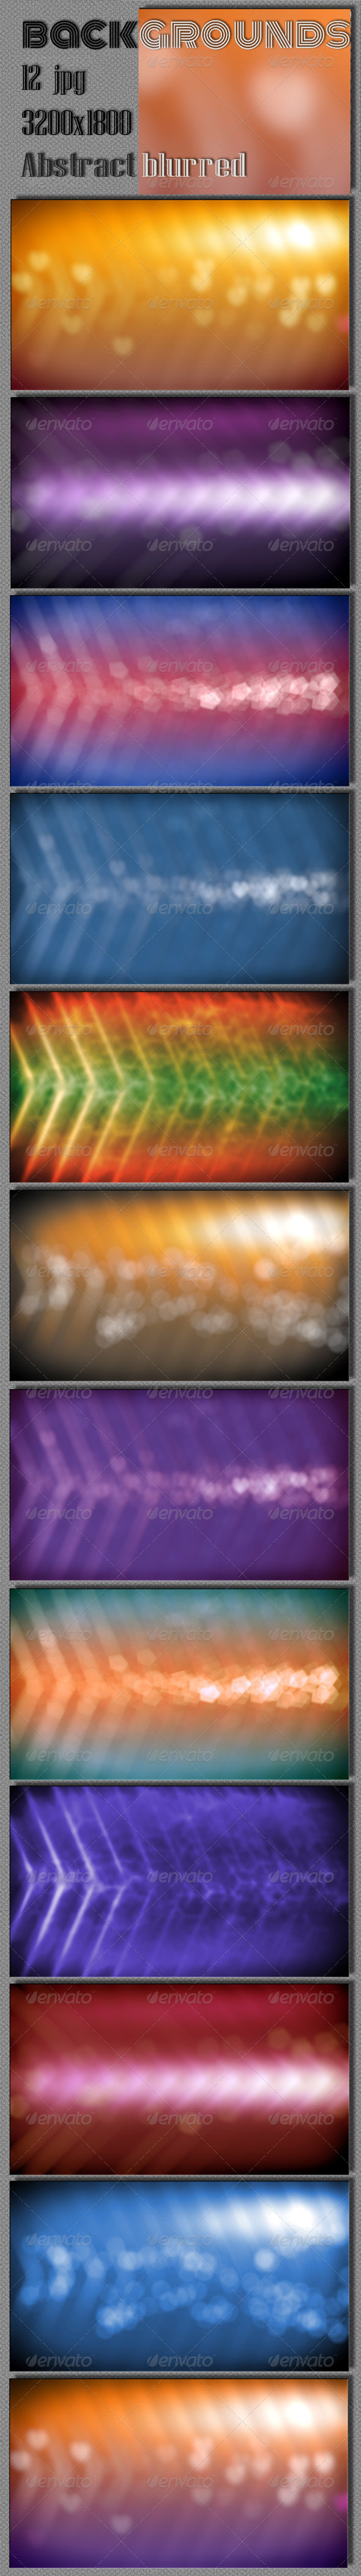 Abstract Blurred Backgrounds - Abstract Backgrounds